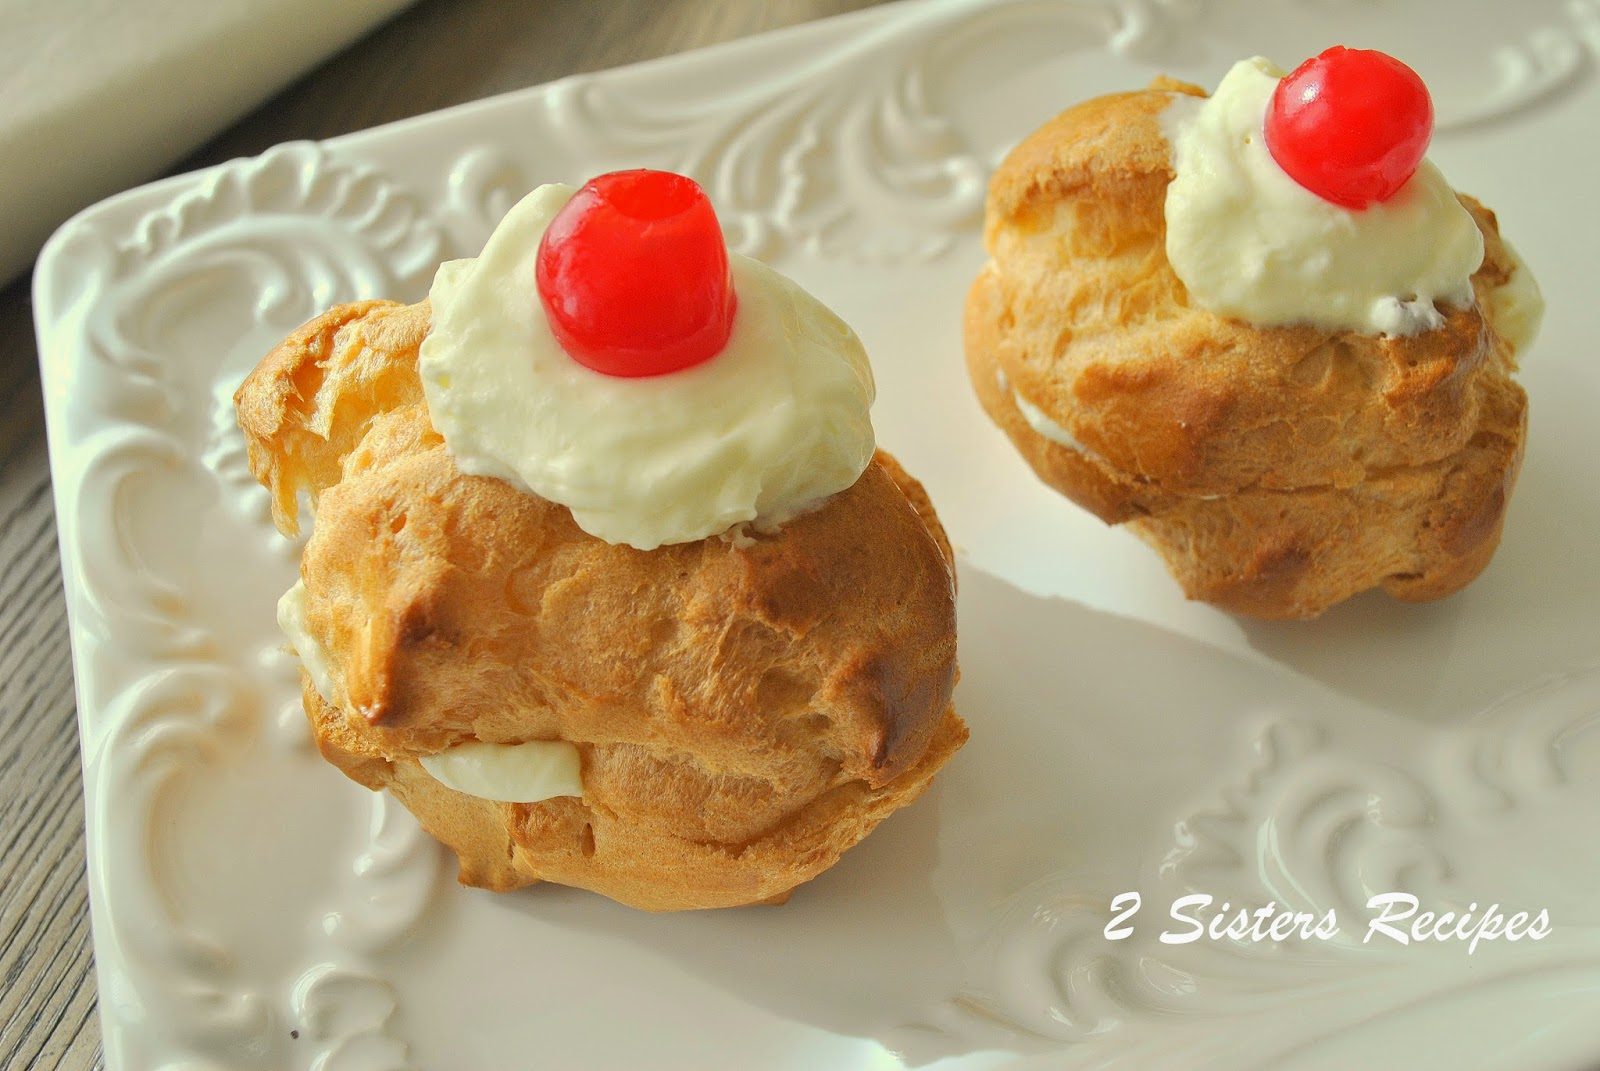 ... Recipes... by Anna and Liz: Italian Cream Puffs for St. Joseph's Day